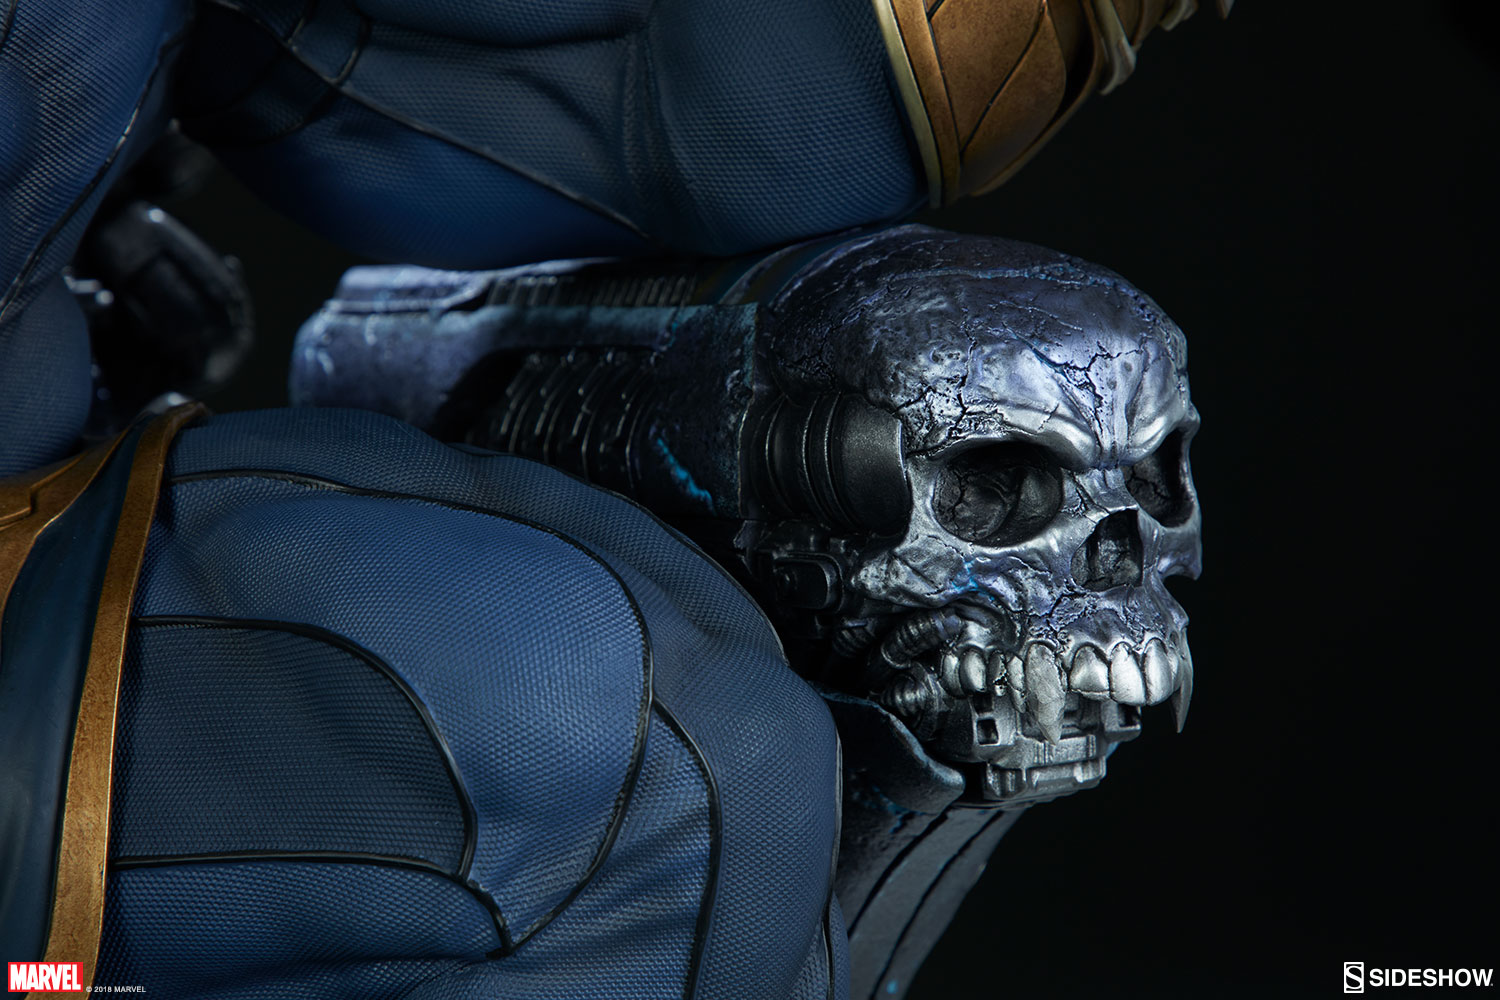 Marvel Thanos on Throne Maquette by Sideshow Collectibles